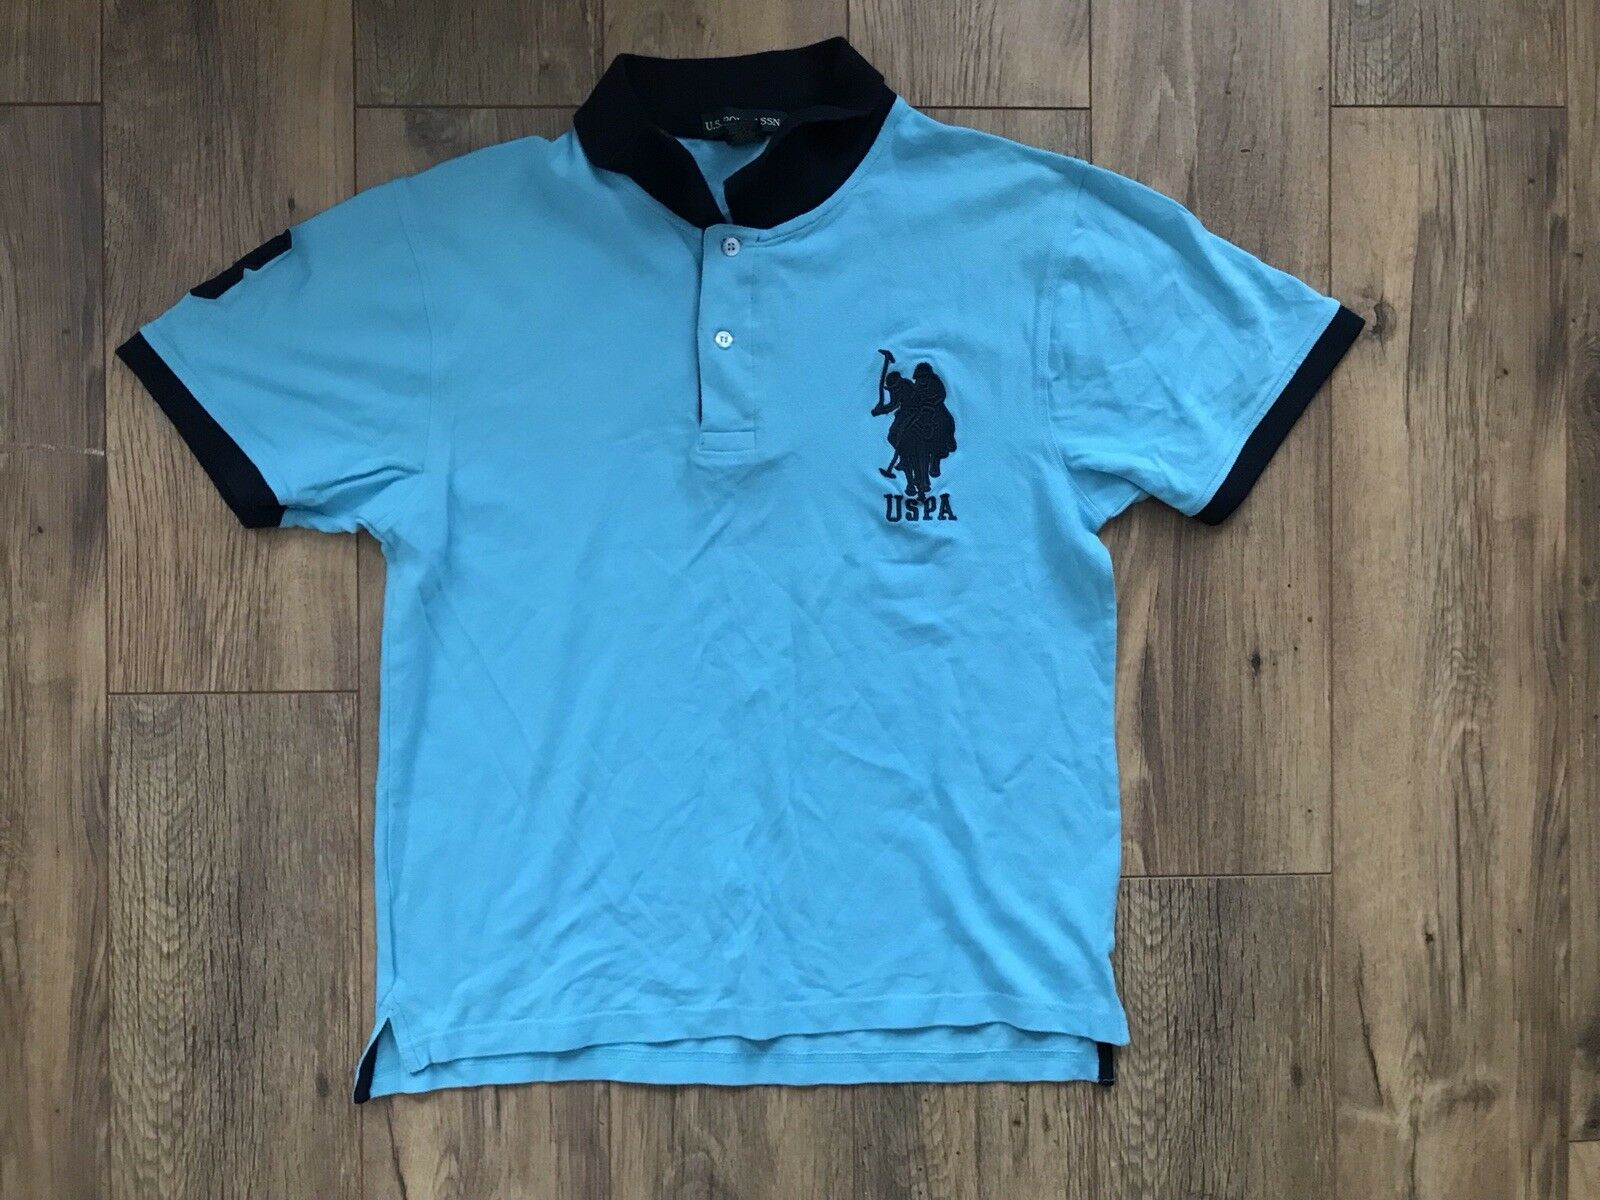 Polo bluee T-shirt Size L